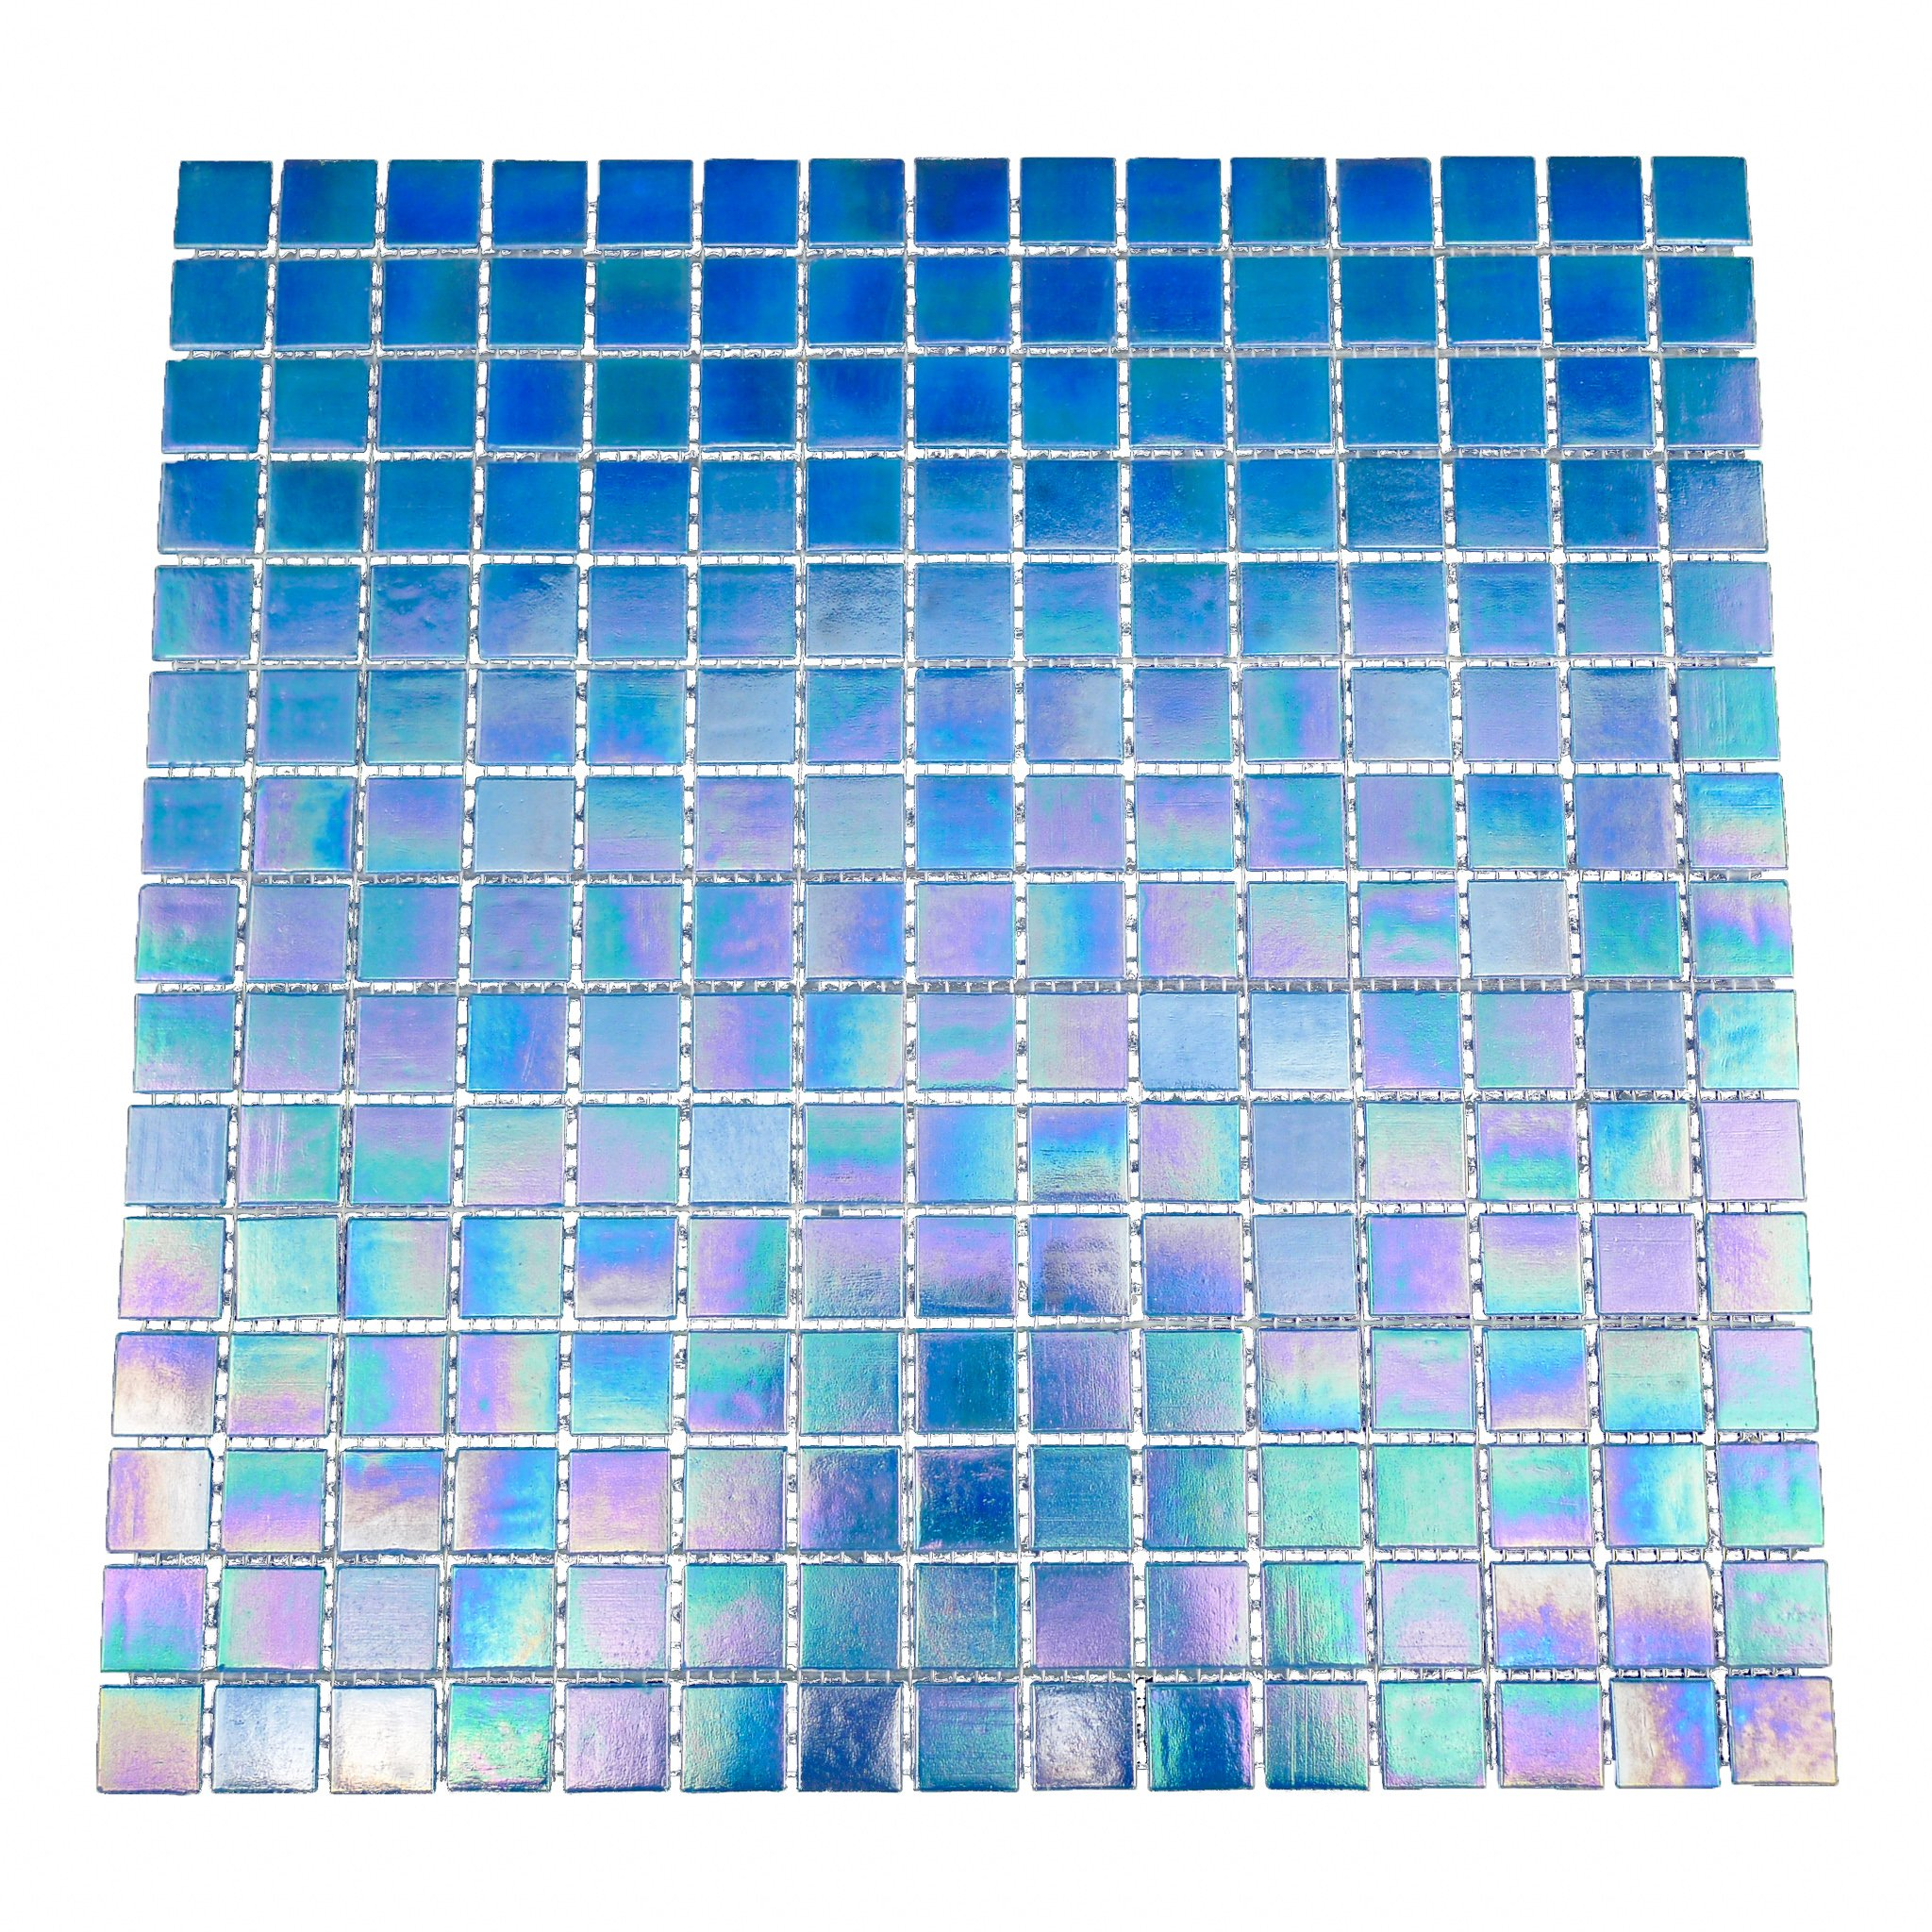 URBN Contemporary Deep Ocean Blue Iridescent Glass Mosaic Tile for Kitchen and Bath - One Box of 20 Sheets (23 SQ FT)